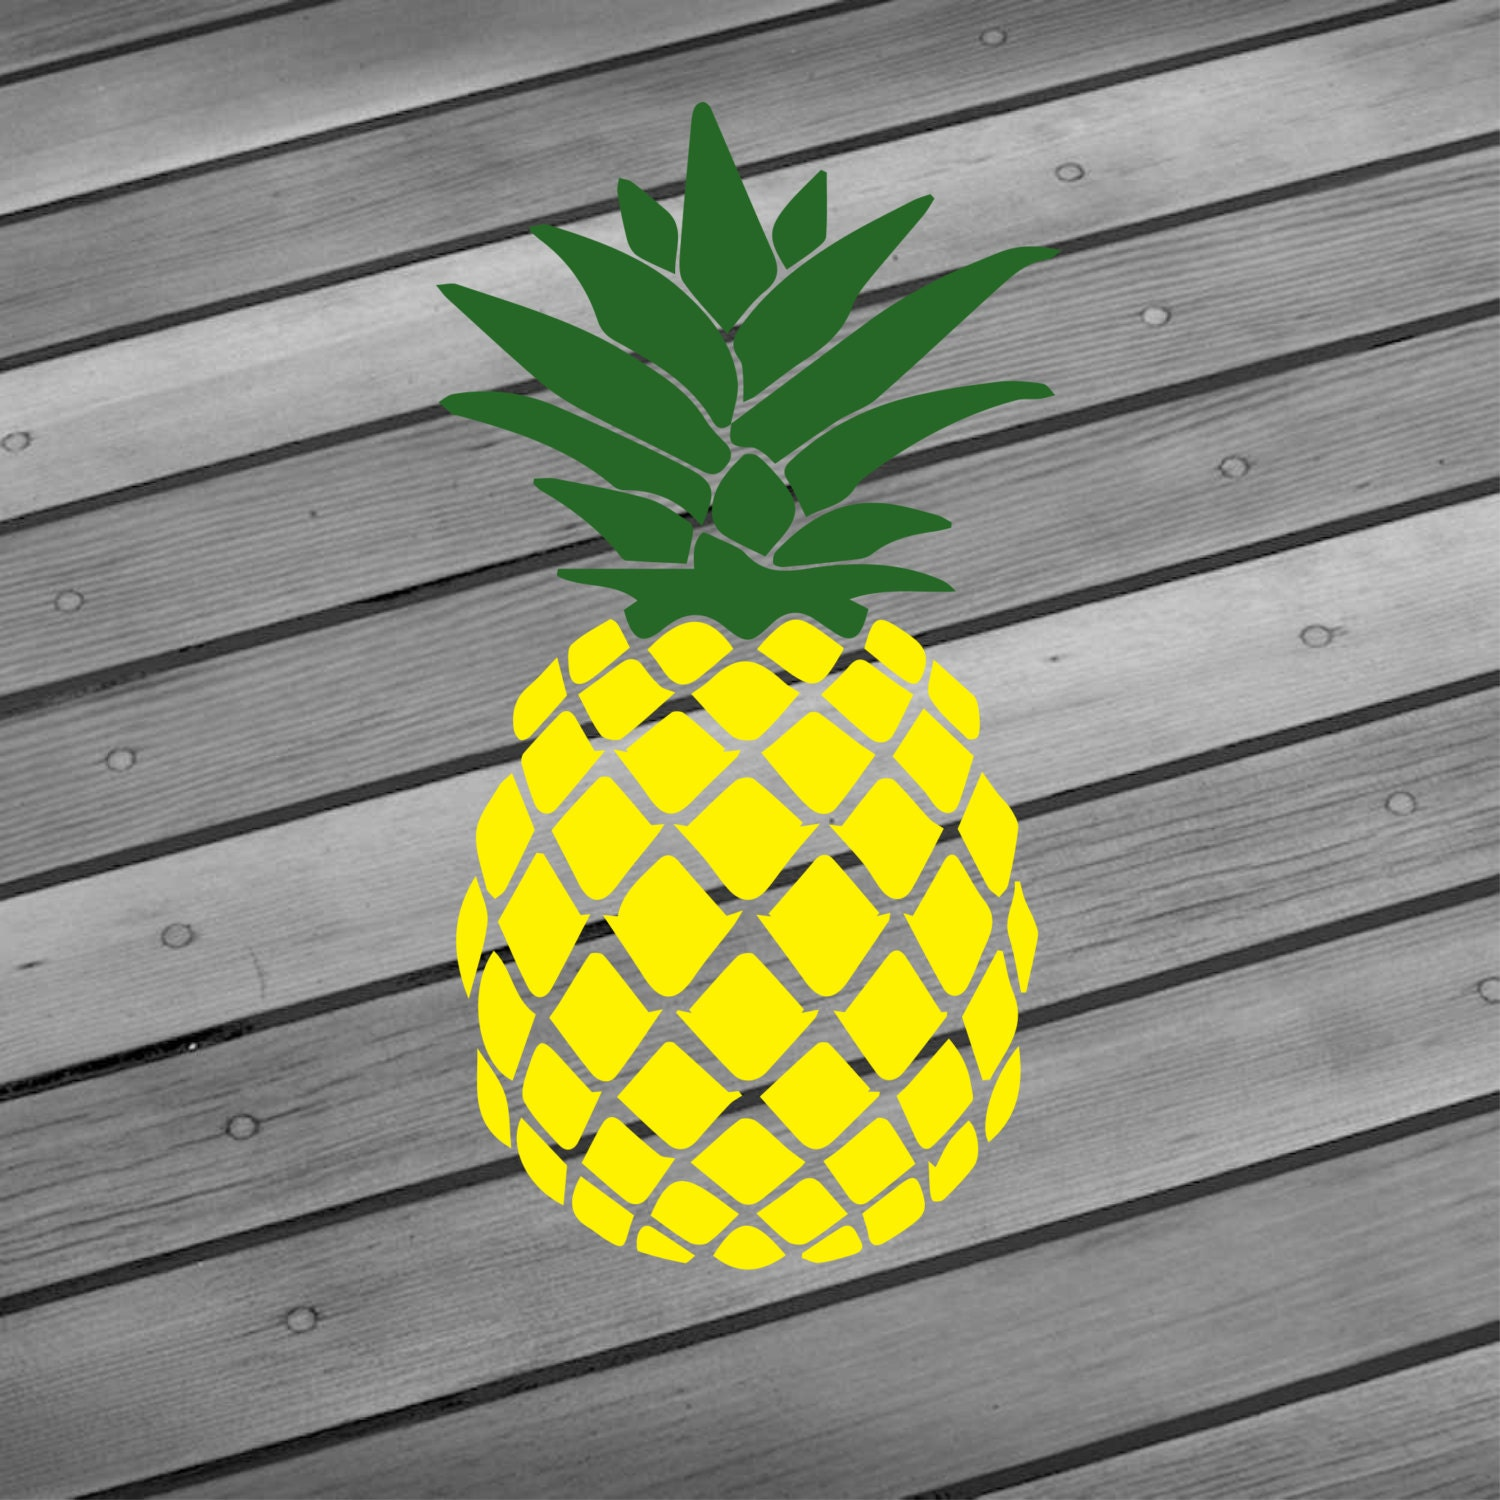 Pineapple Decal Pineapple Sticker Pineapple Car By